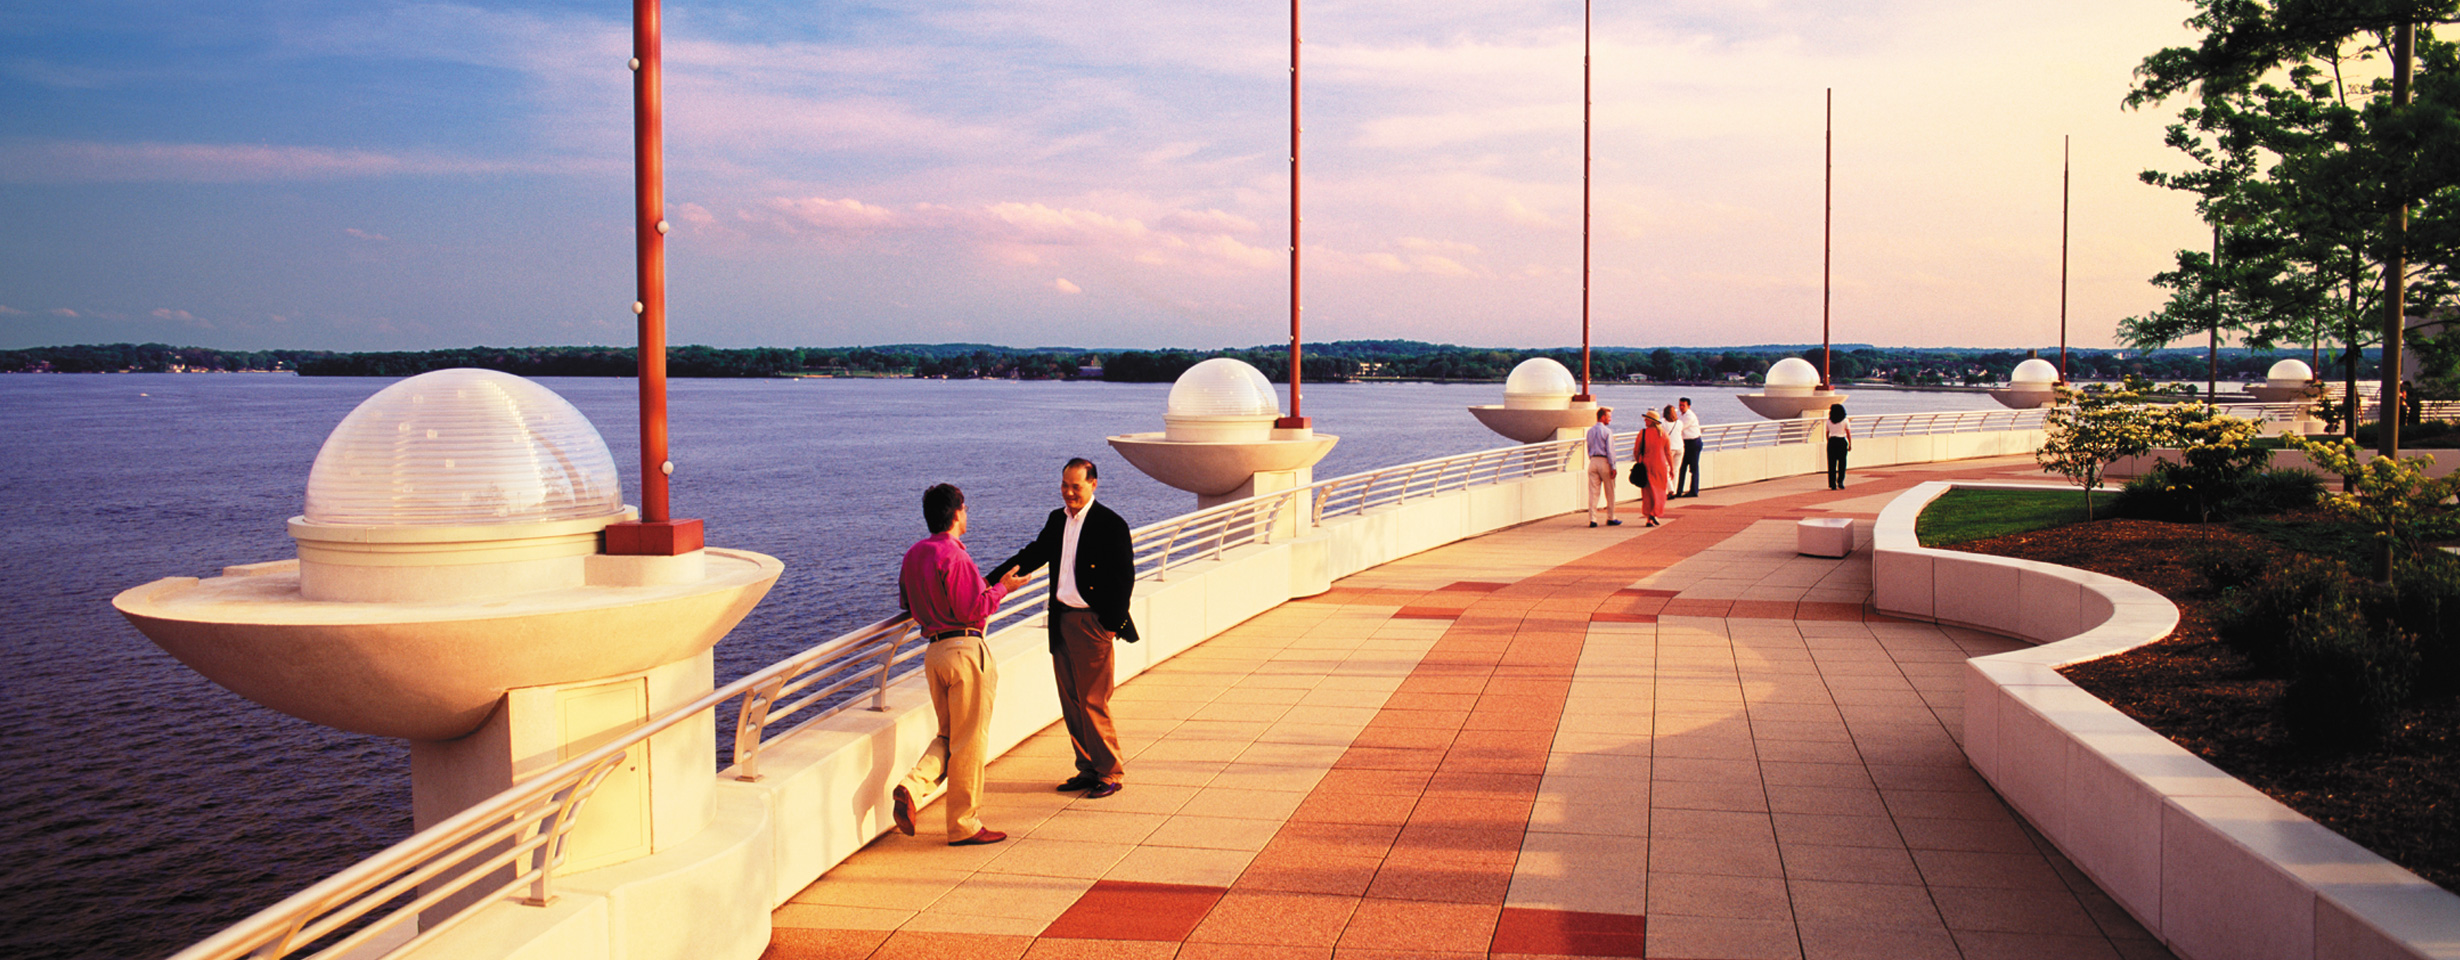 Waterfront Dining Restaurants In Madison Wi